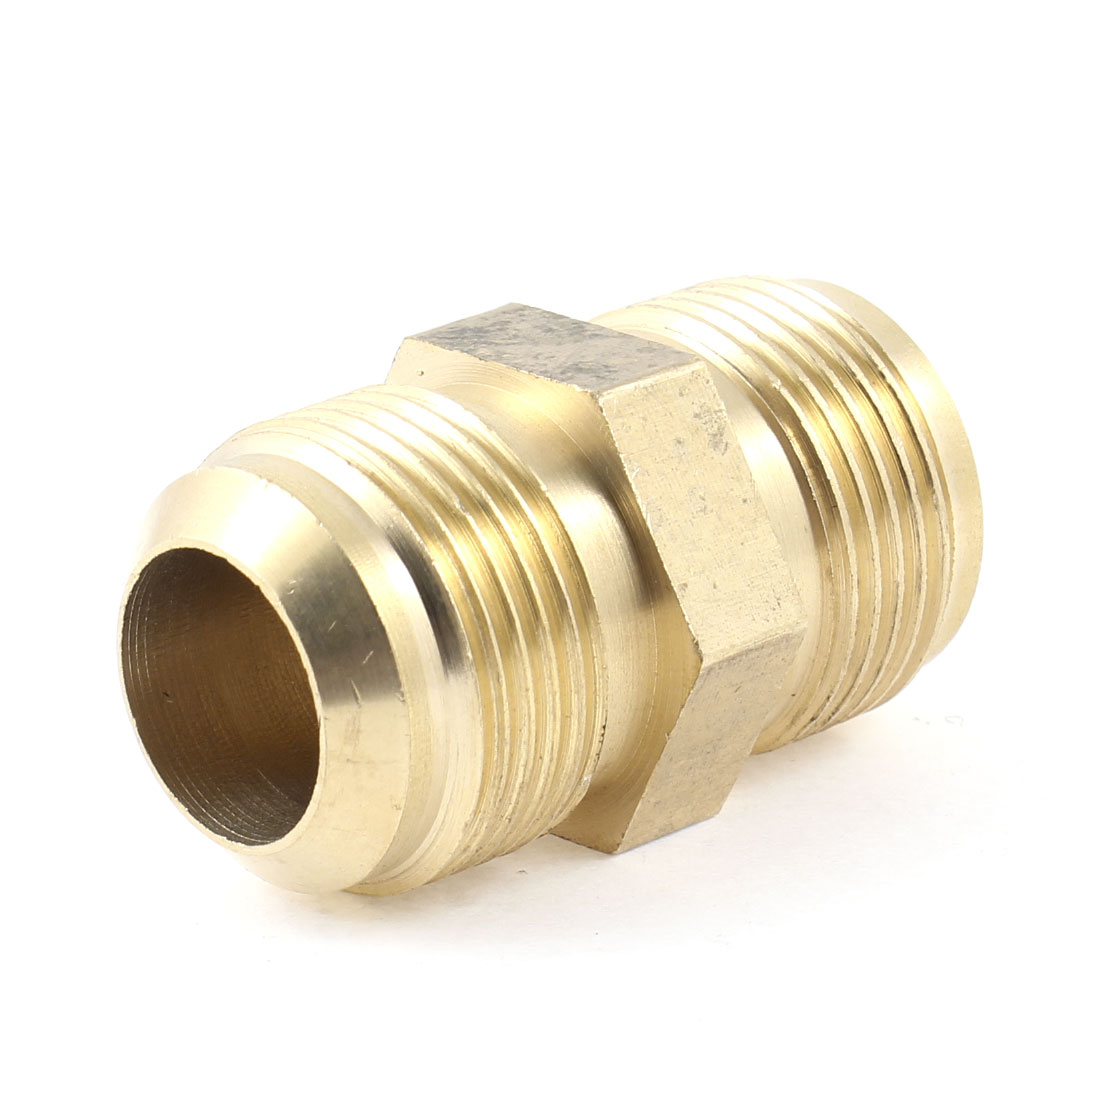 "3/4"" PT to 3/4"" PT Male Adapter Connecting Joiner Pipe Fitting for Refrigeration"